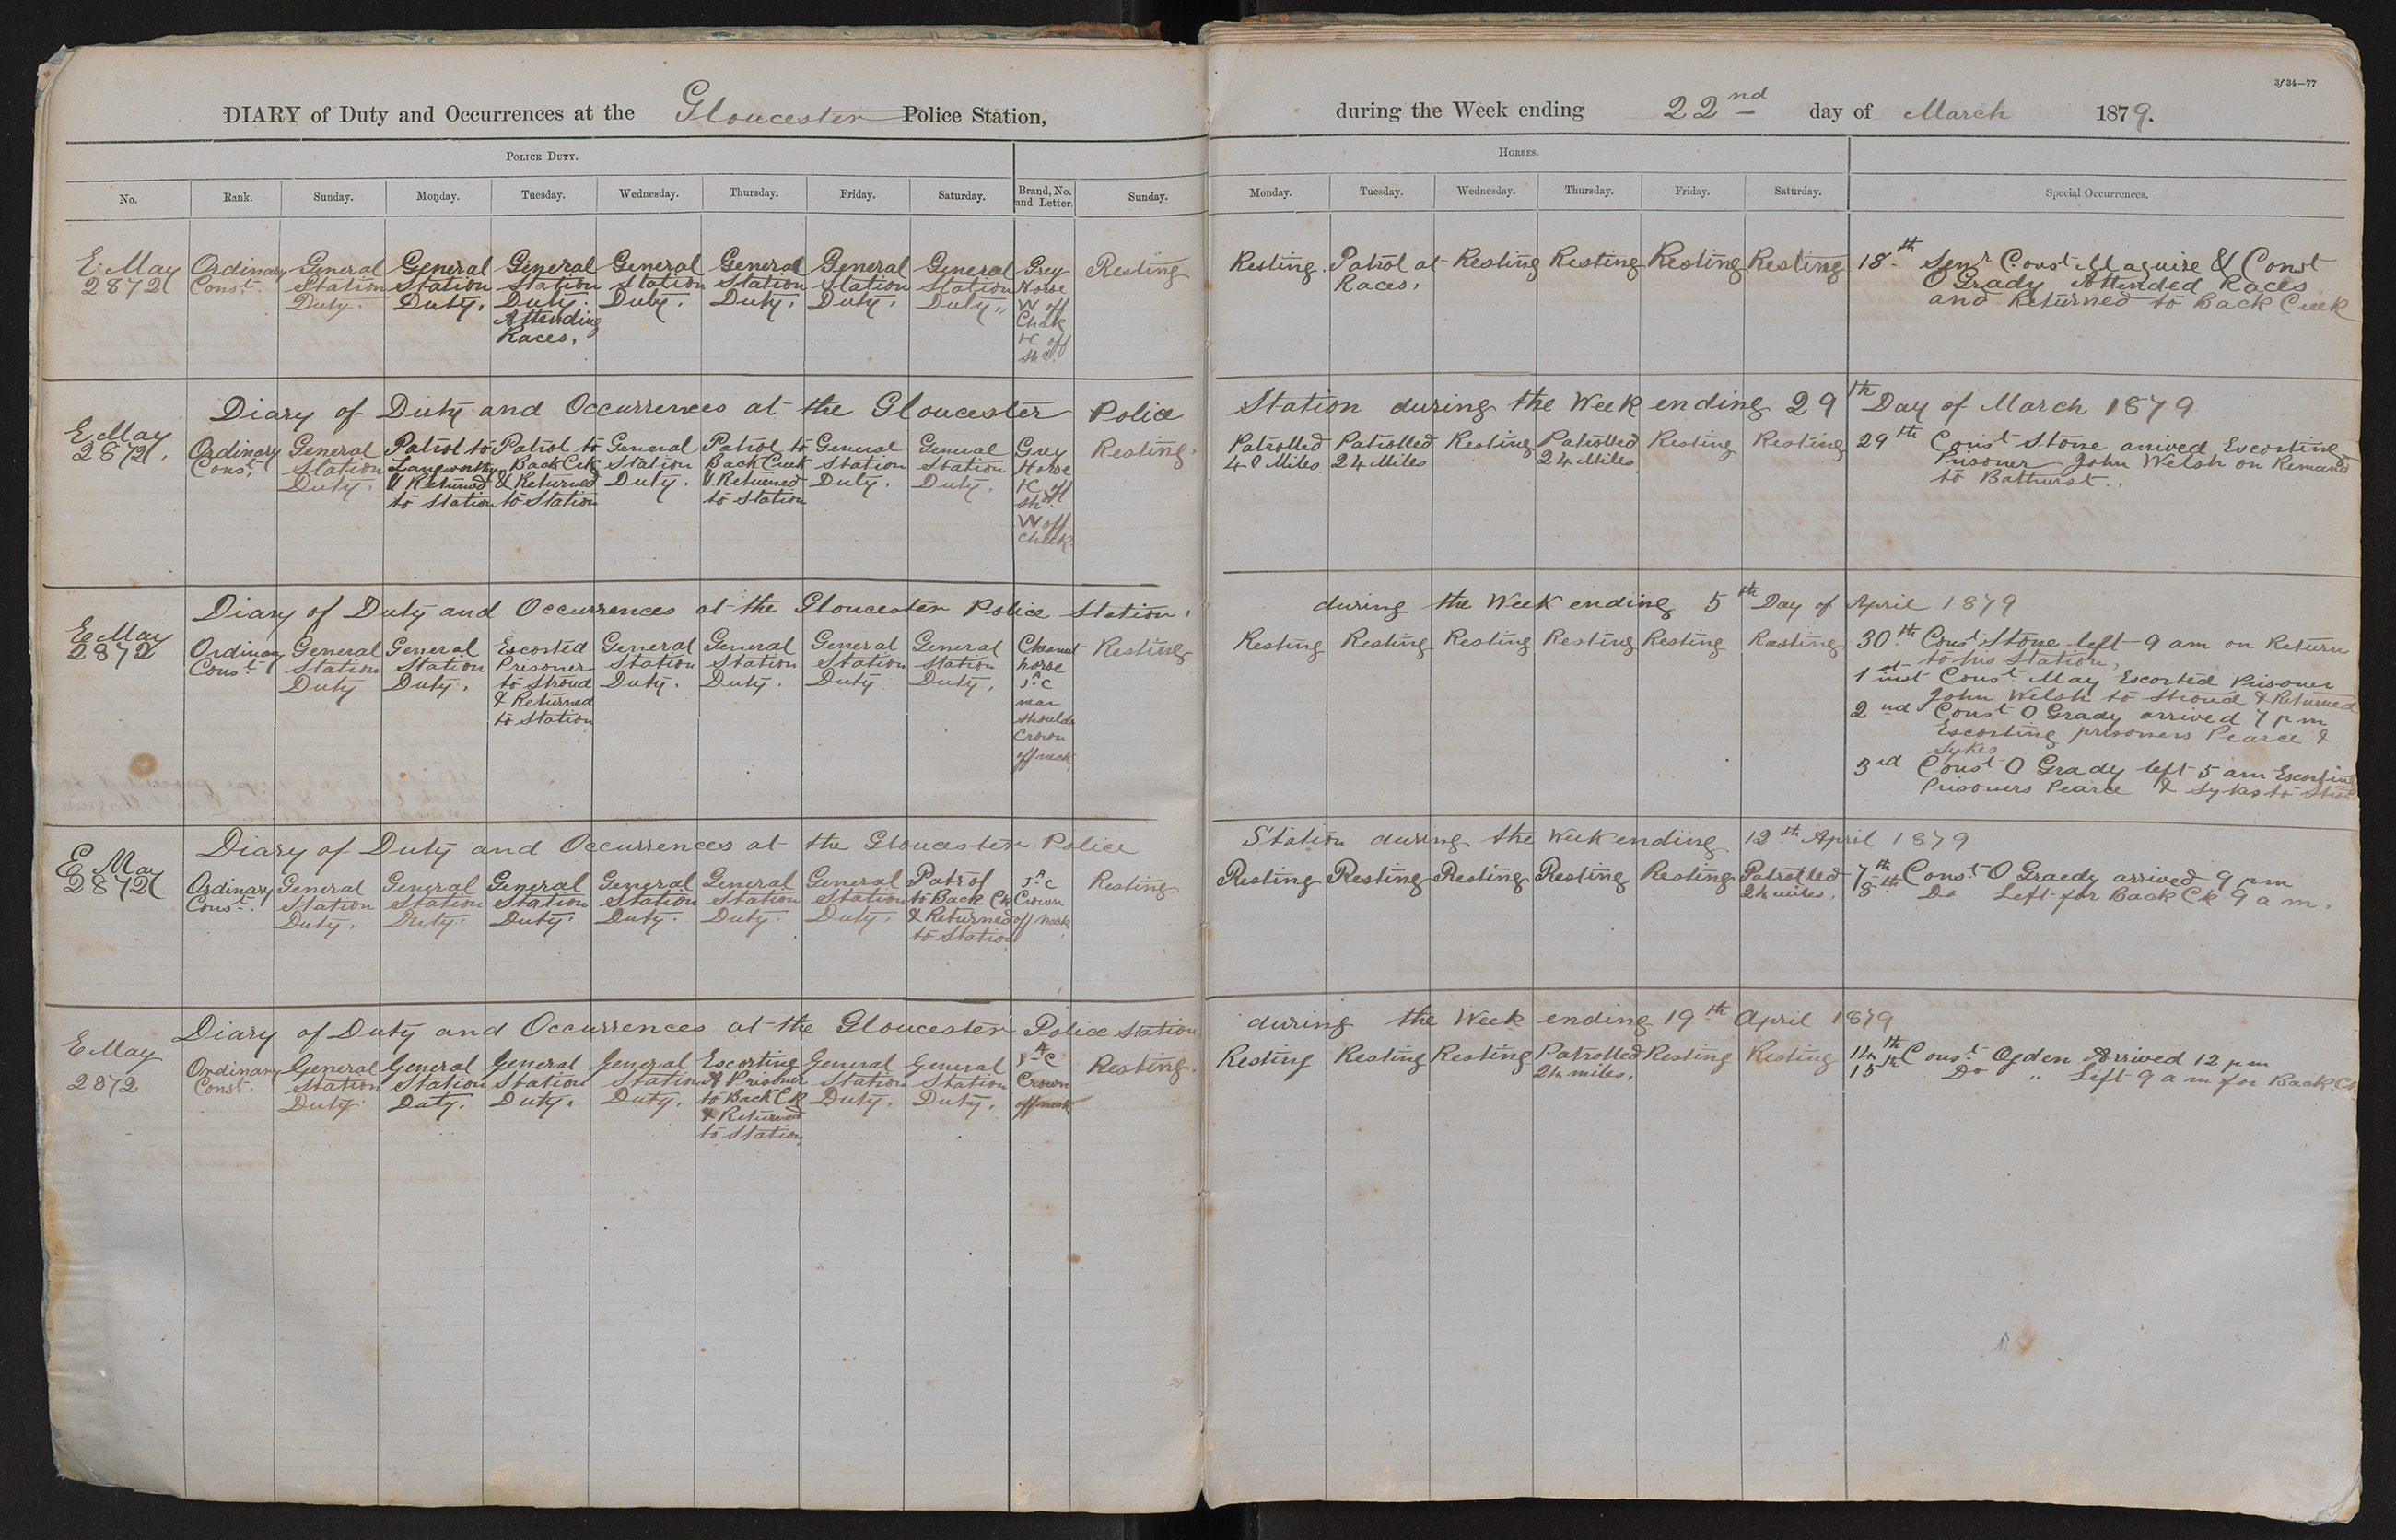 Diary of duty and occurrences at the Gloucester Police Station during the week ending the 22nd day of March 1879